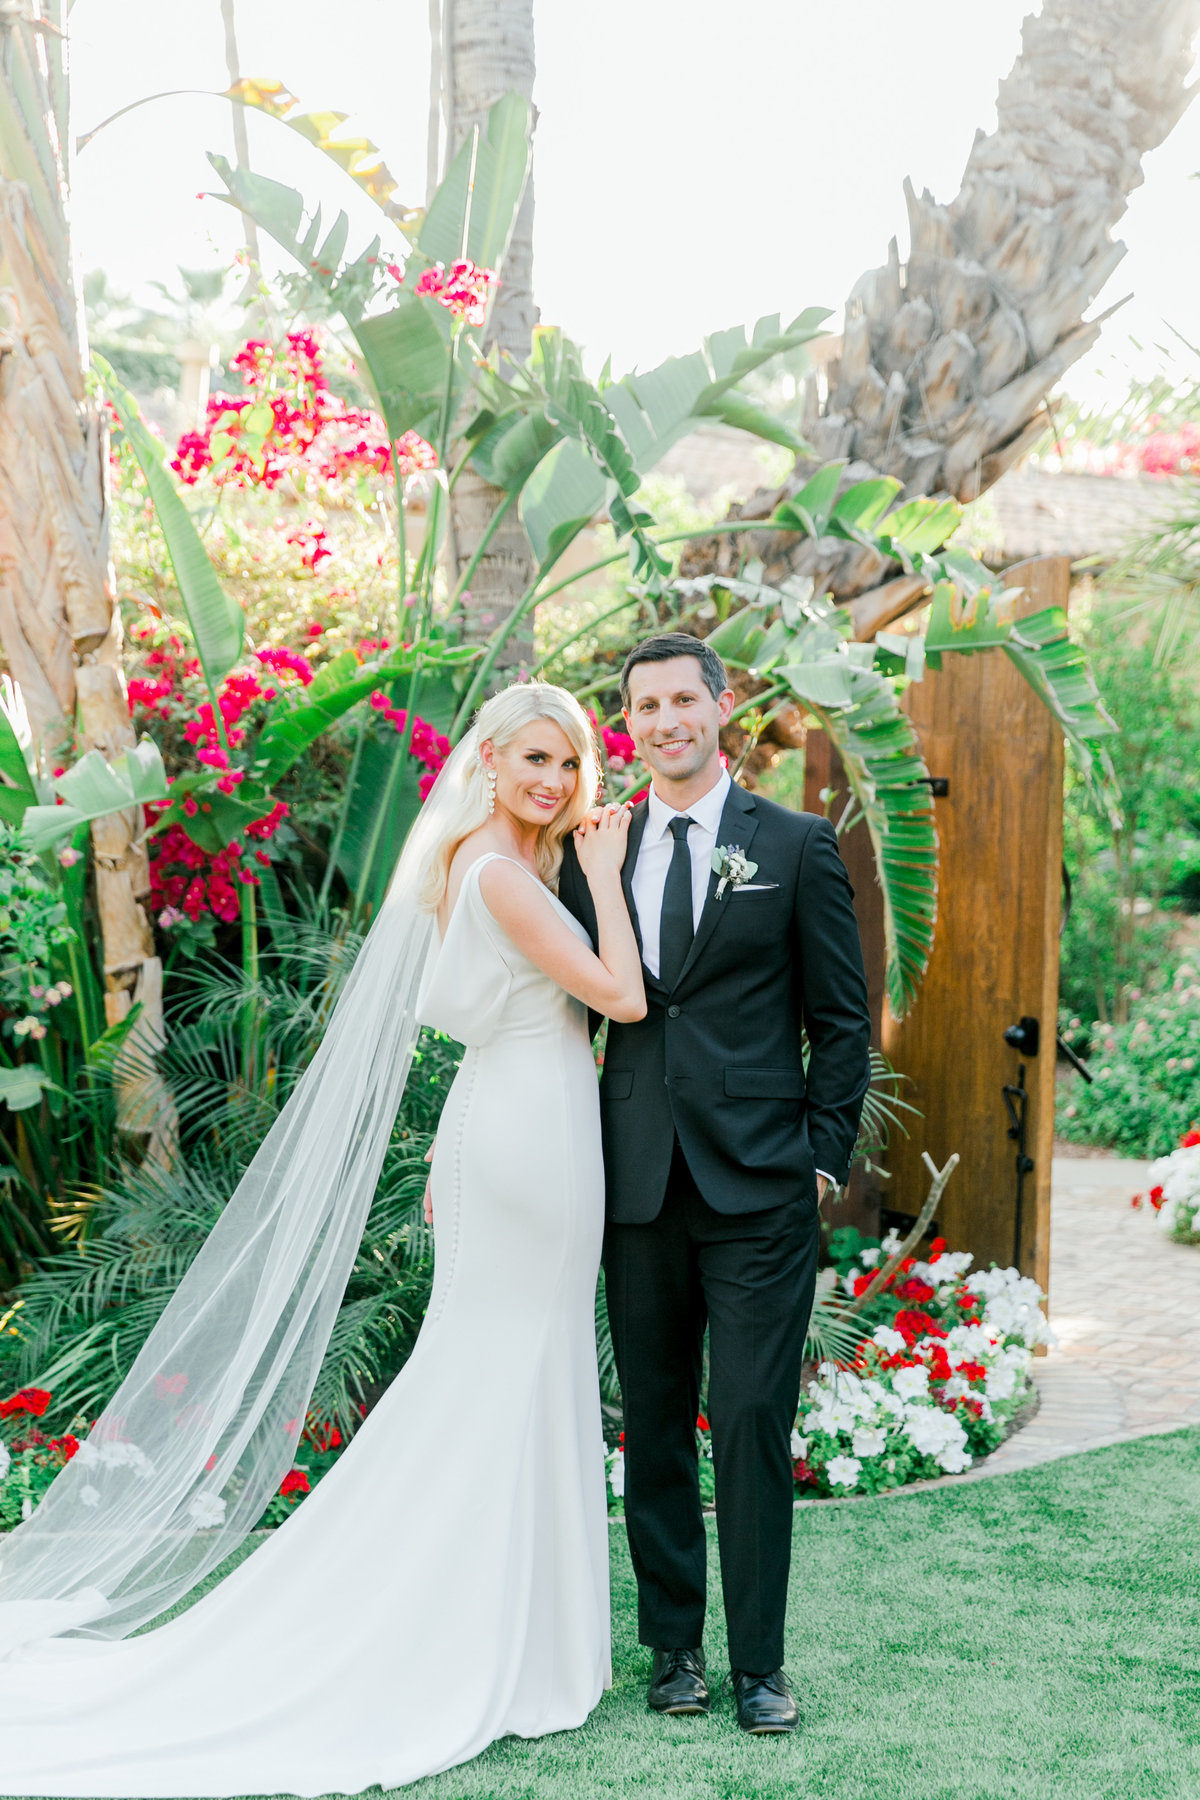 Karlie Colleen Photography - The Royal Palms - Arizona Wedding - Alex & Alex-516